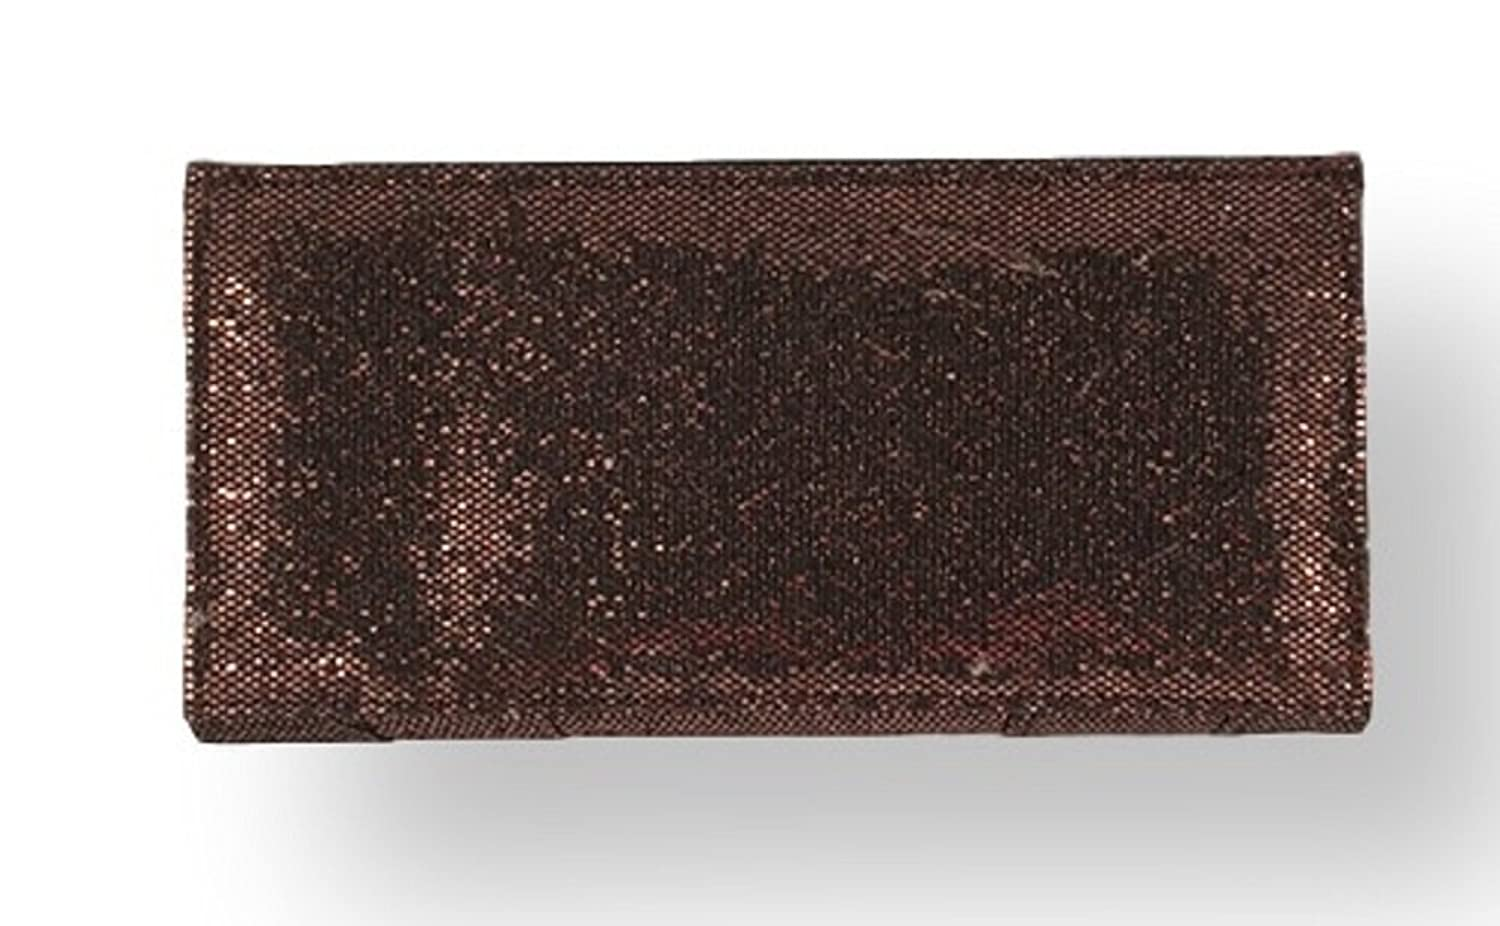 JuJu's Metallic Clutch Wallet